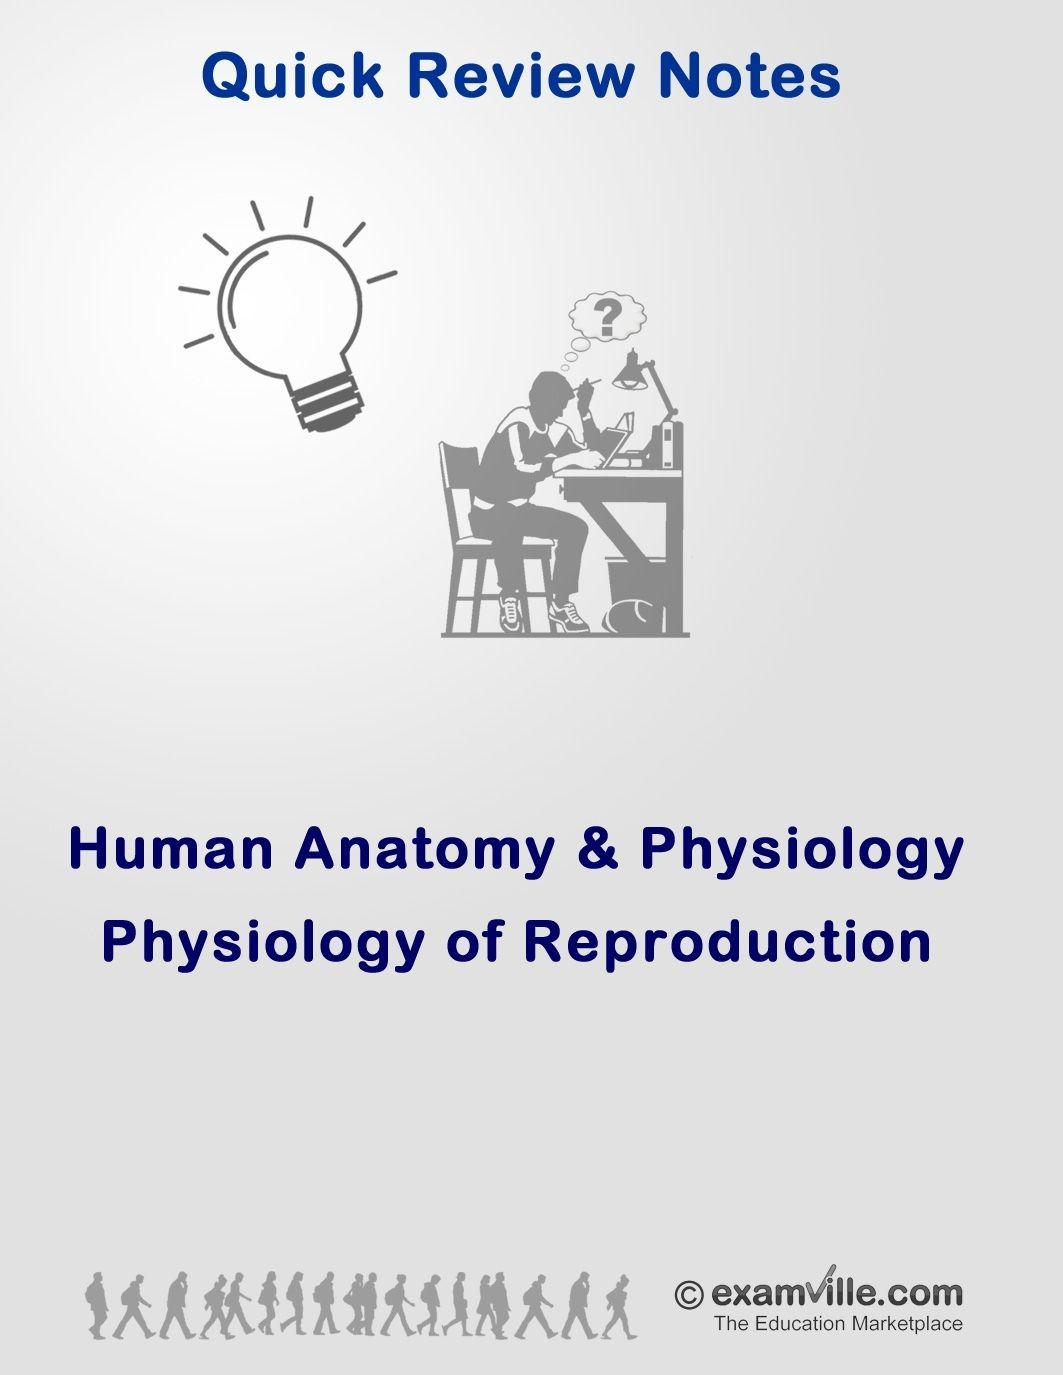 Physiology Of Human Reproduction Quick Study Review Notes